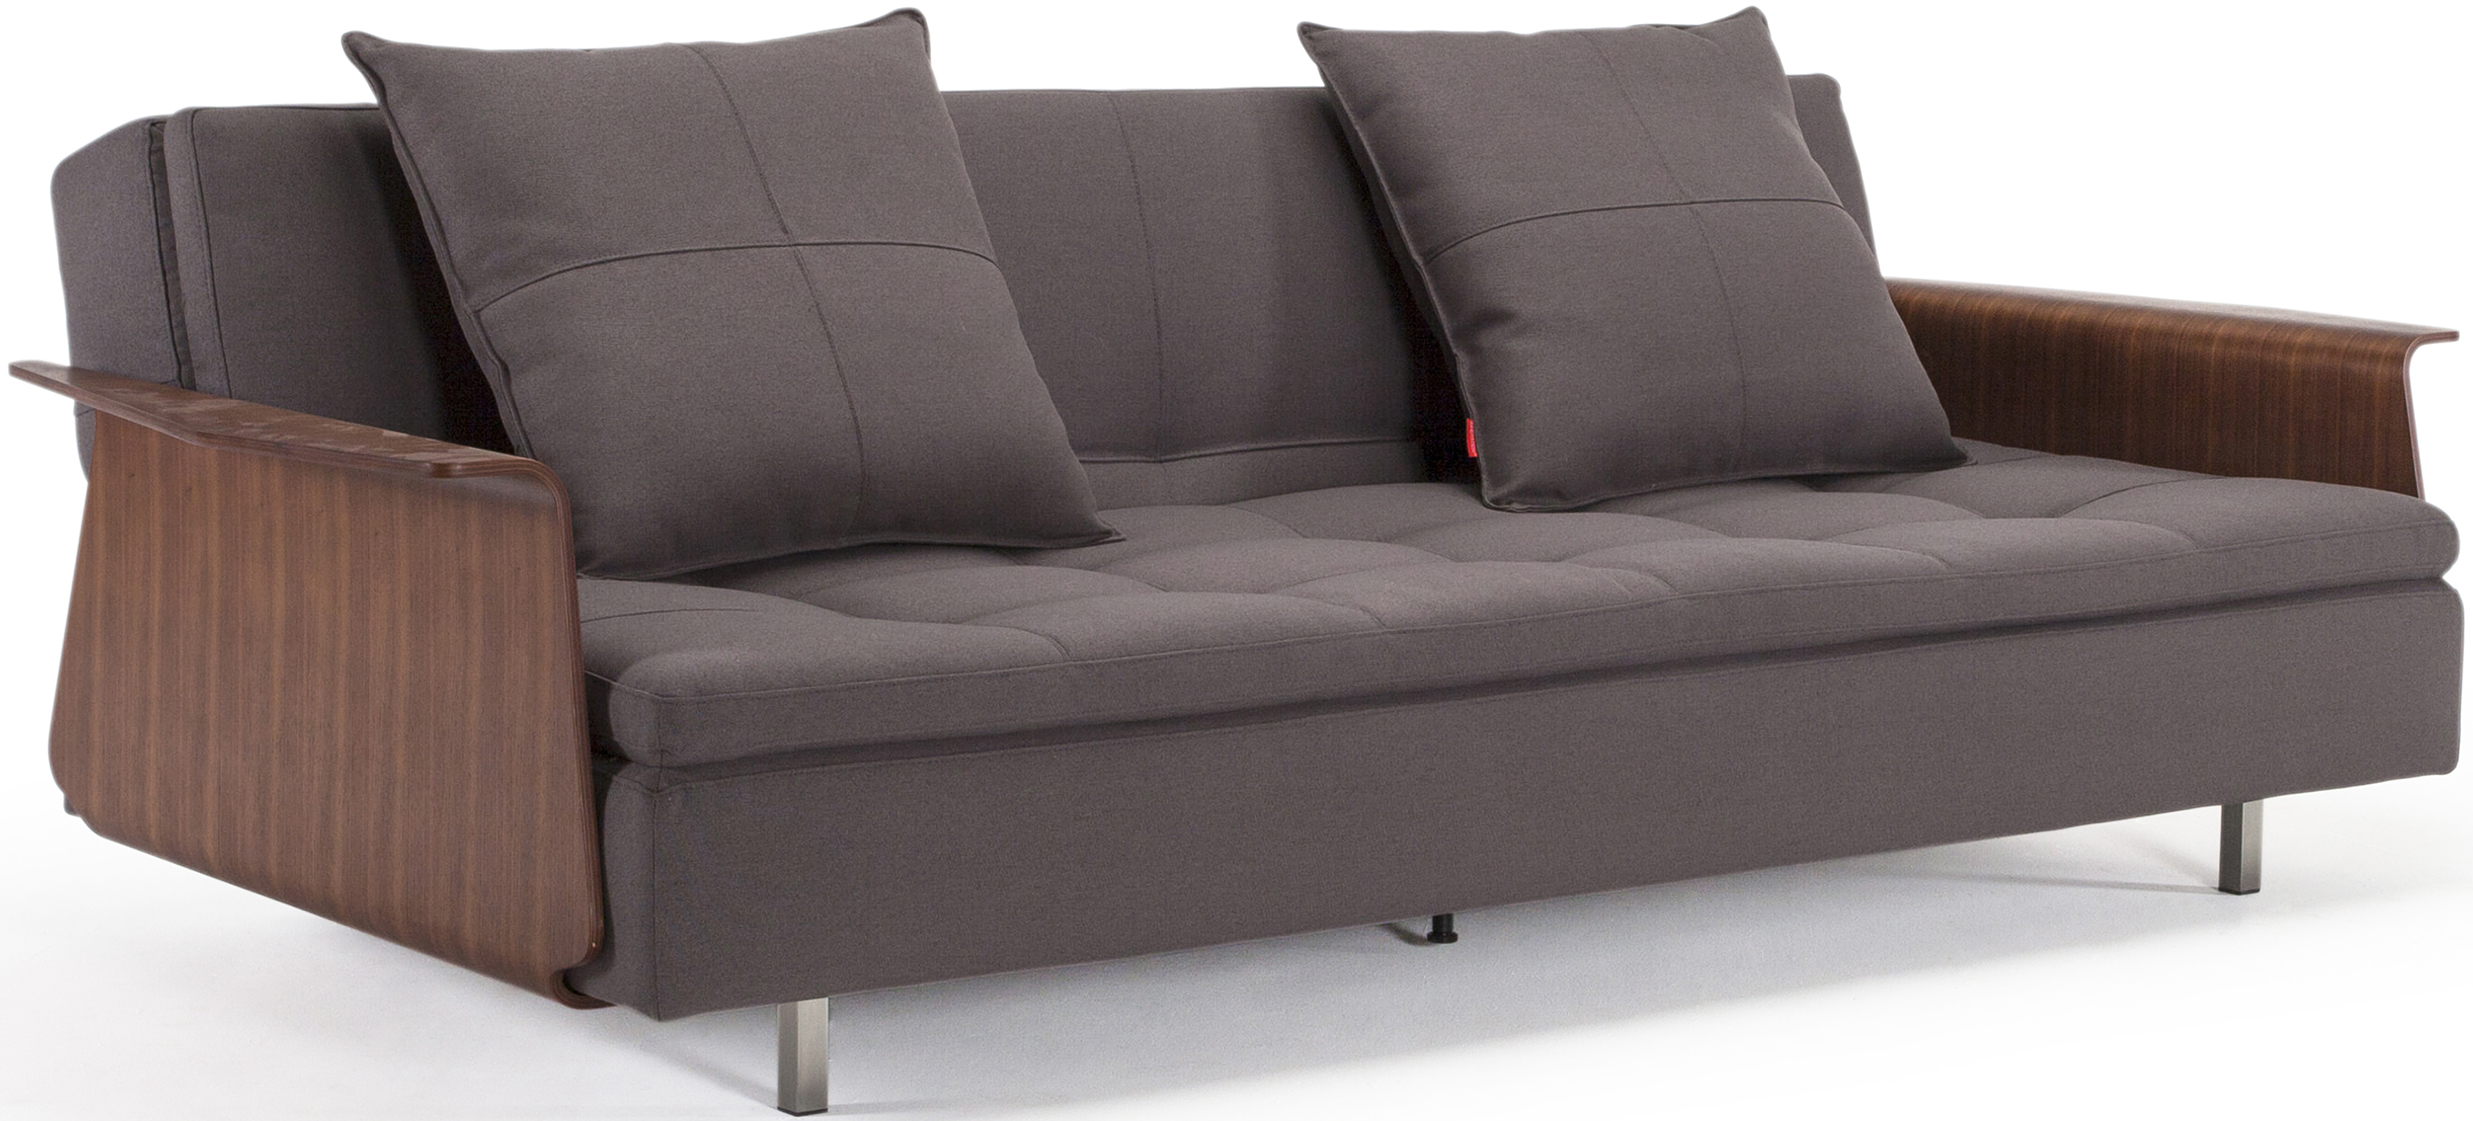 innovation long horn sofa